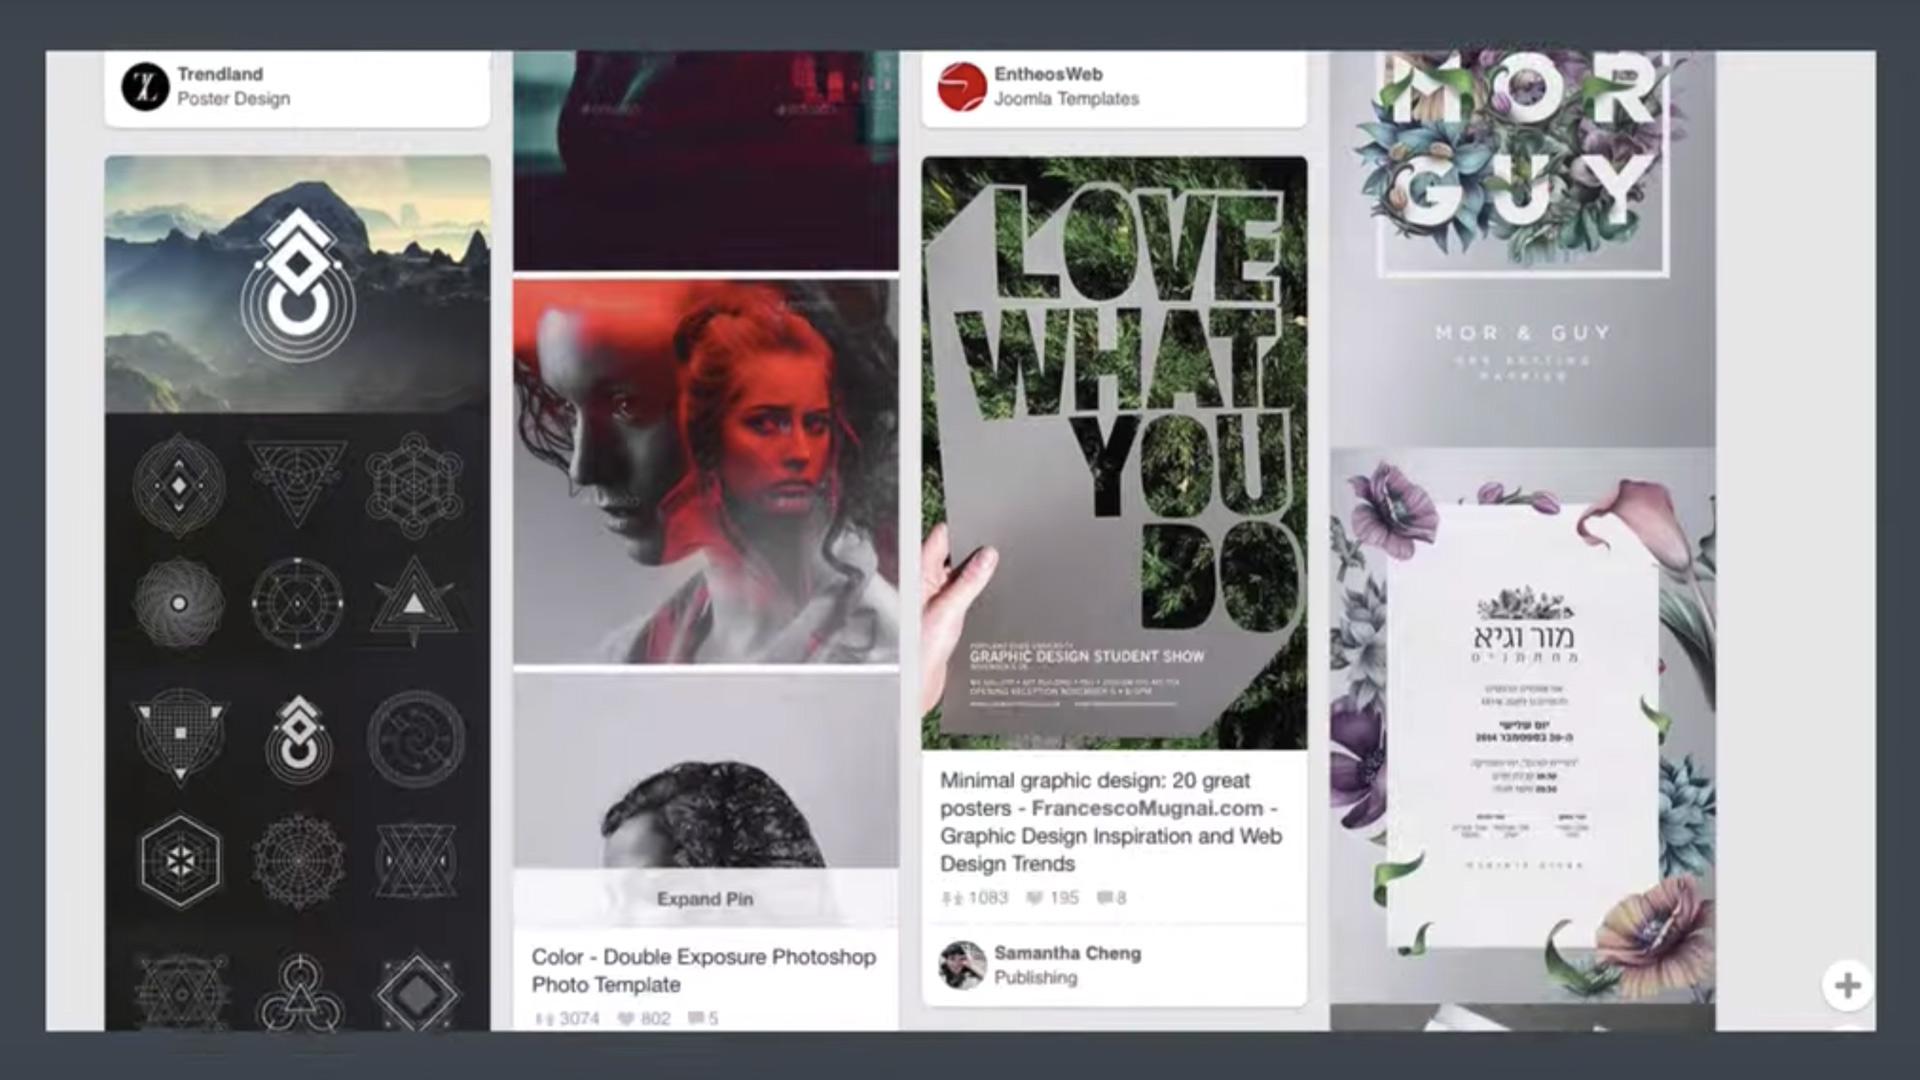 sample video learn about graphic design by designing a poster in photoshop